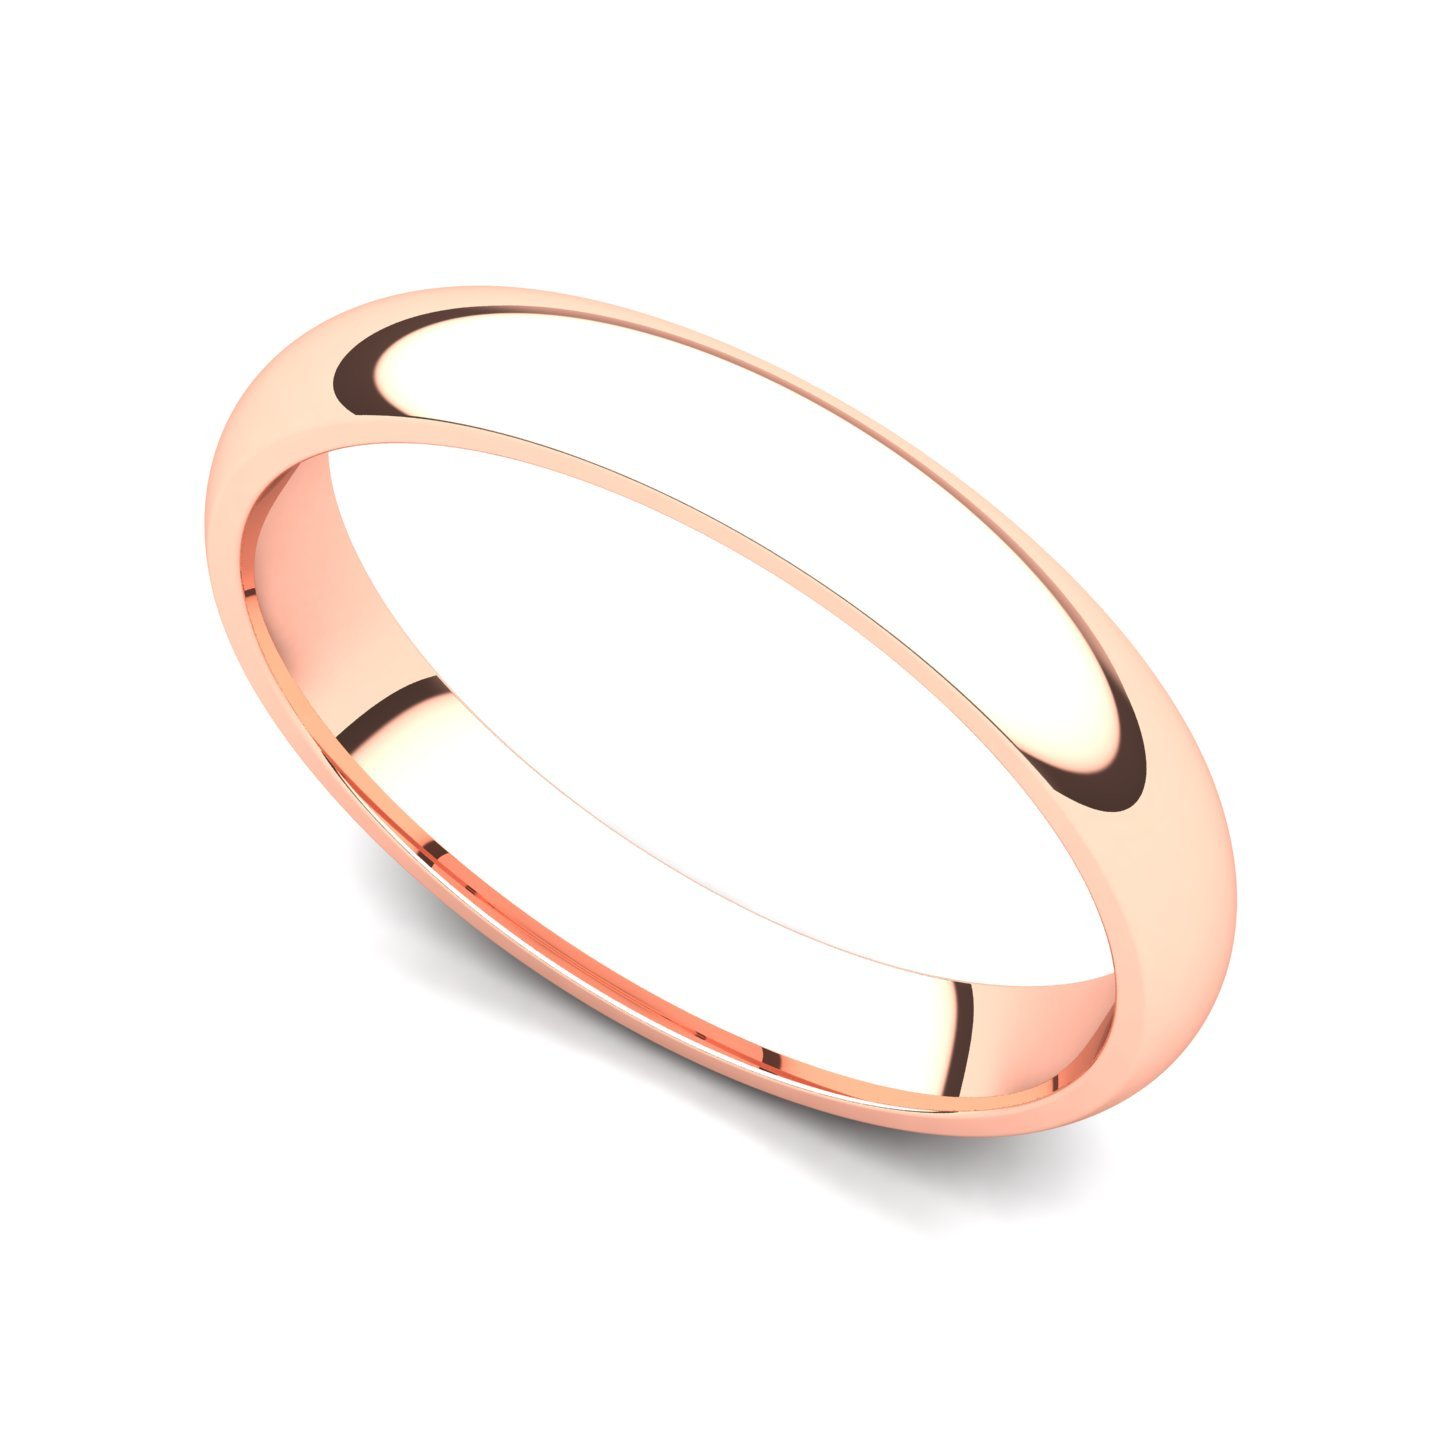 14k Rose Gold 3mm Classic Plain Comfort Fit Wedding Band Ring, 6.5